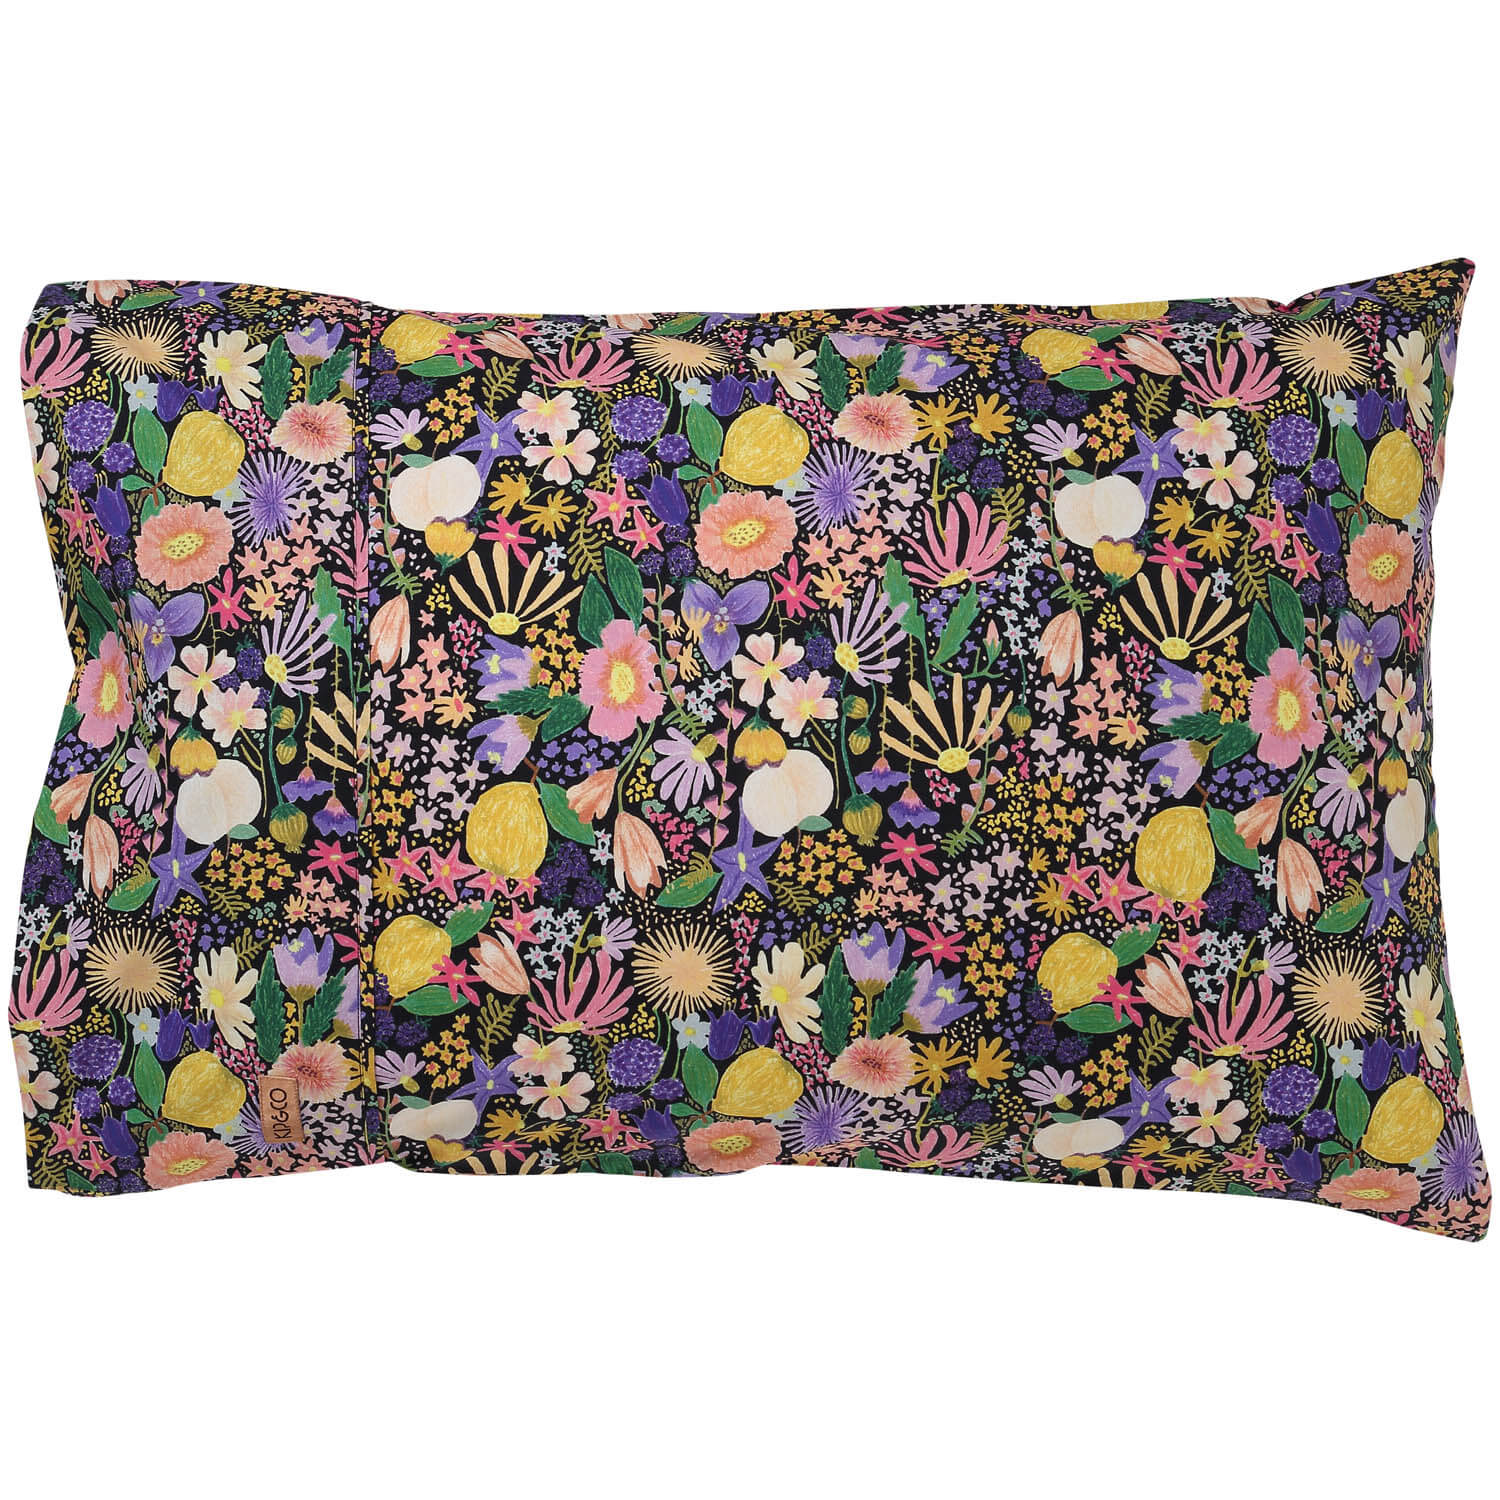 Kip and co pillowcase set meadow black | The Home Maven